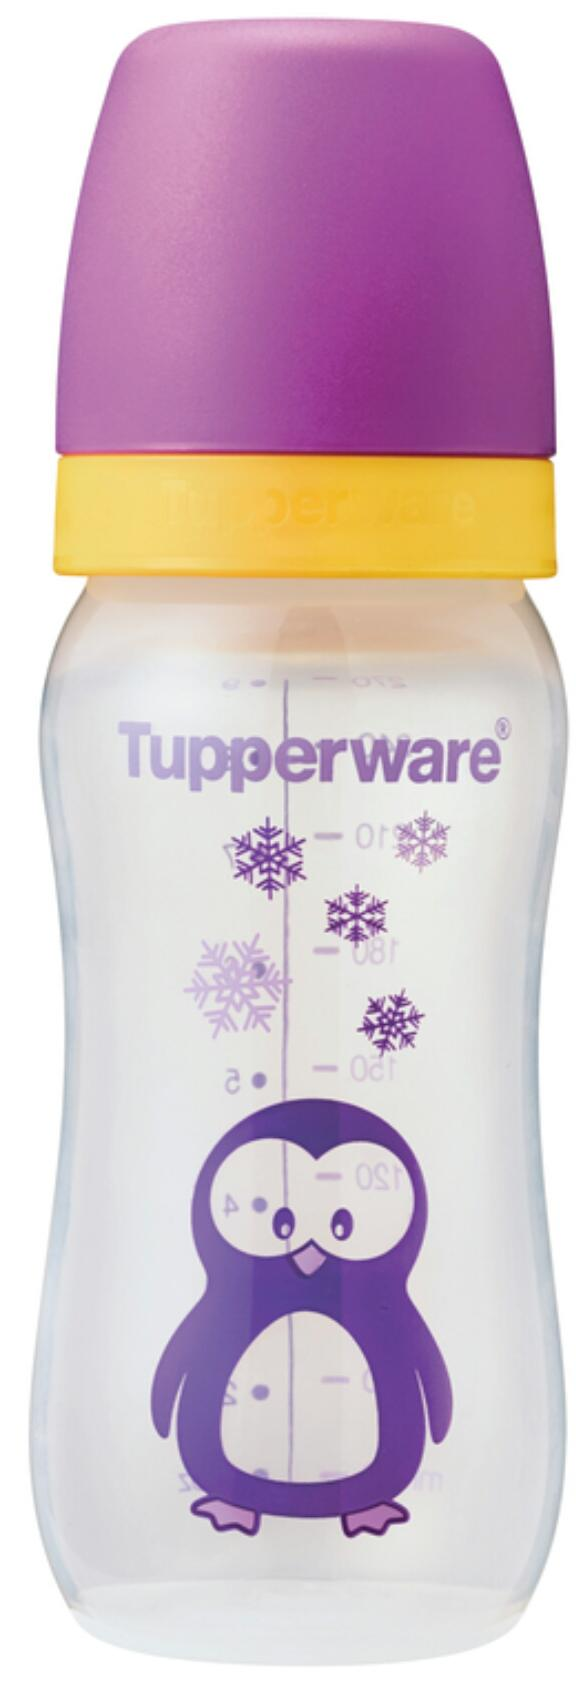 Tupperware Baby Bottle Penguin With Teat (1) 9 oz